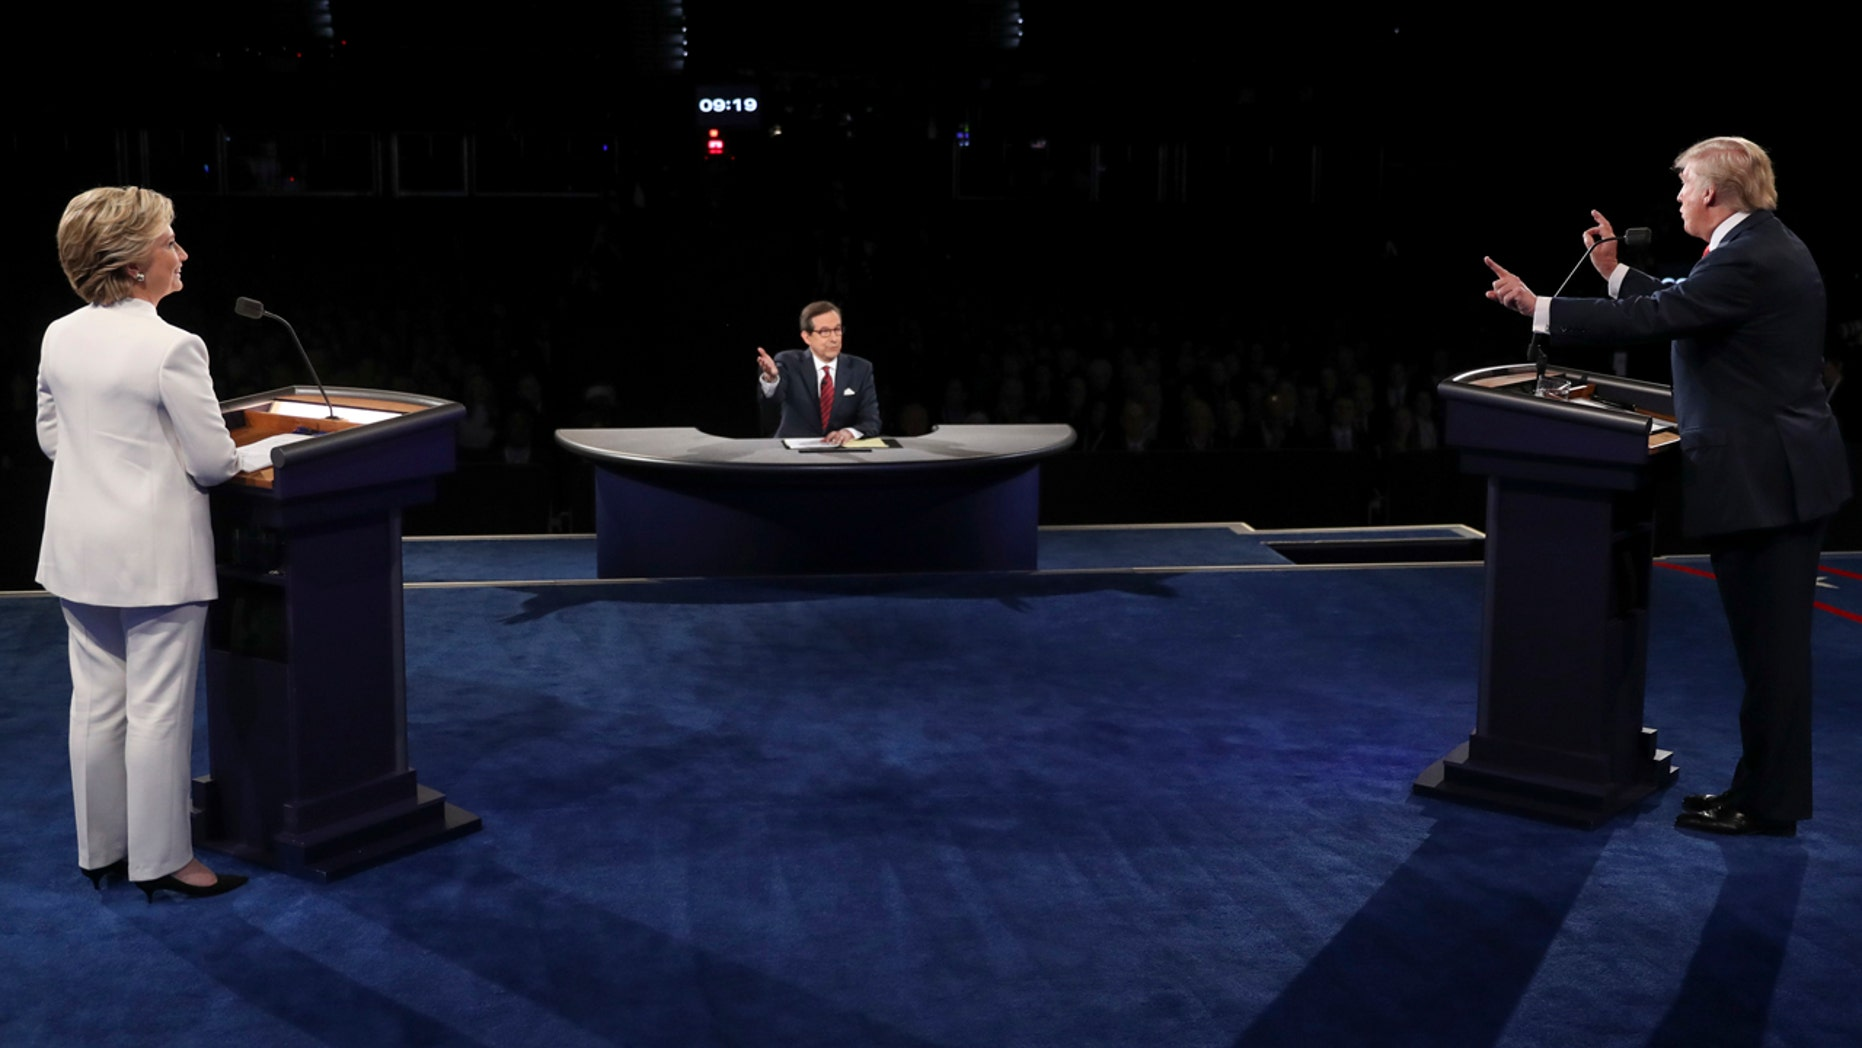 Democratic presidential nominee Hillary Clinton listens as Republican presidential nominee Donald Trump answers a question during the third presidential debate at UNLV in Las Vegas, Wednesday, Oct. 19, 2016. (Joe Raedle/Pool via AP)